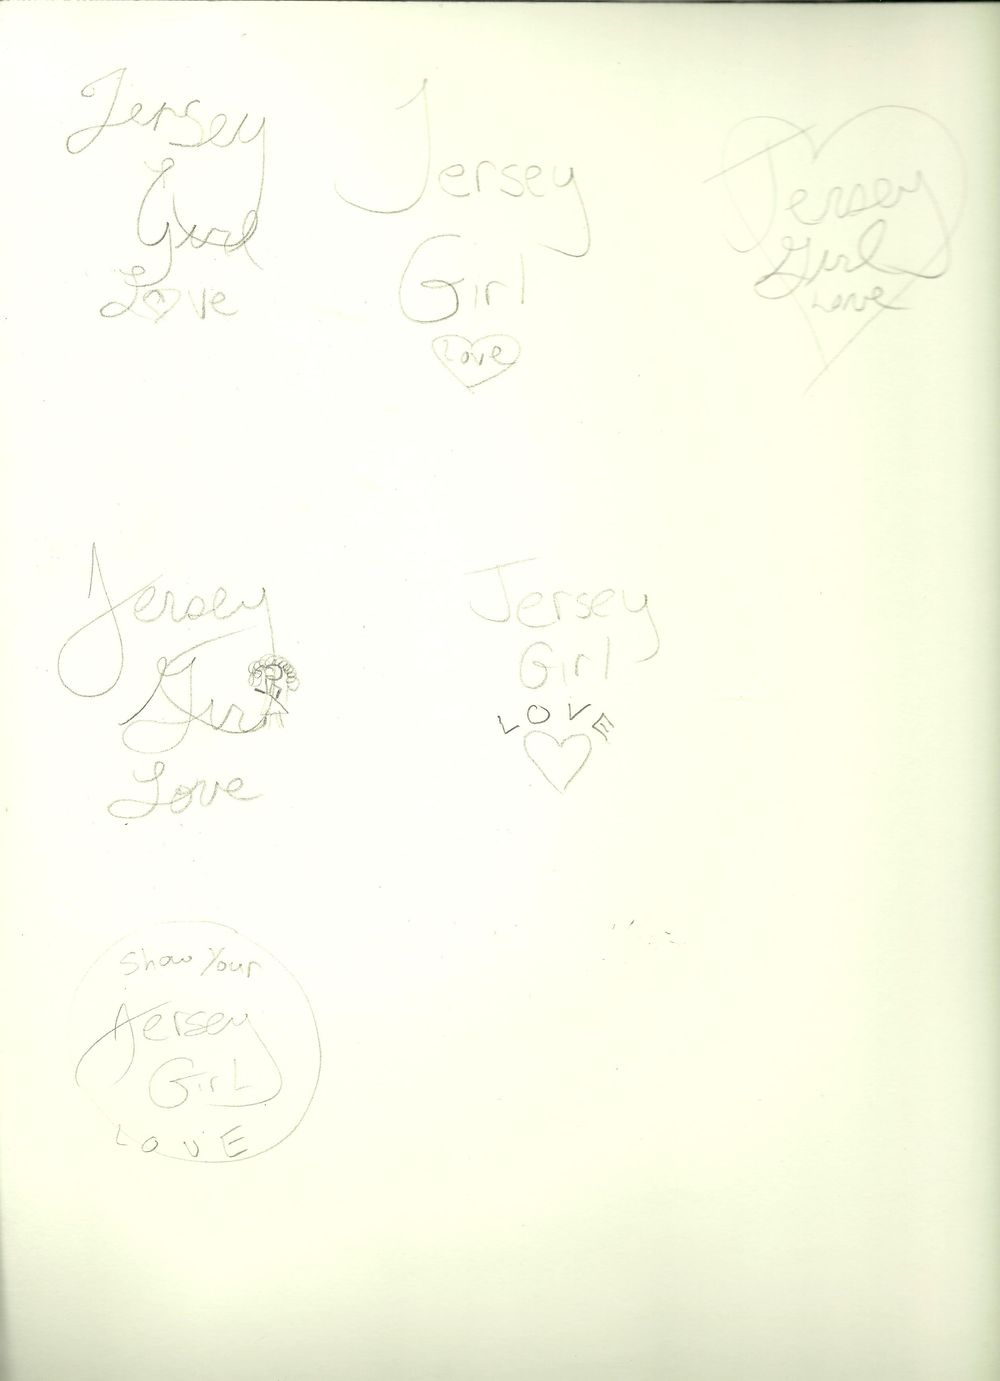 JGL logo sketches - image 2 - student project